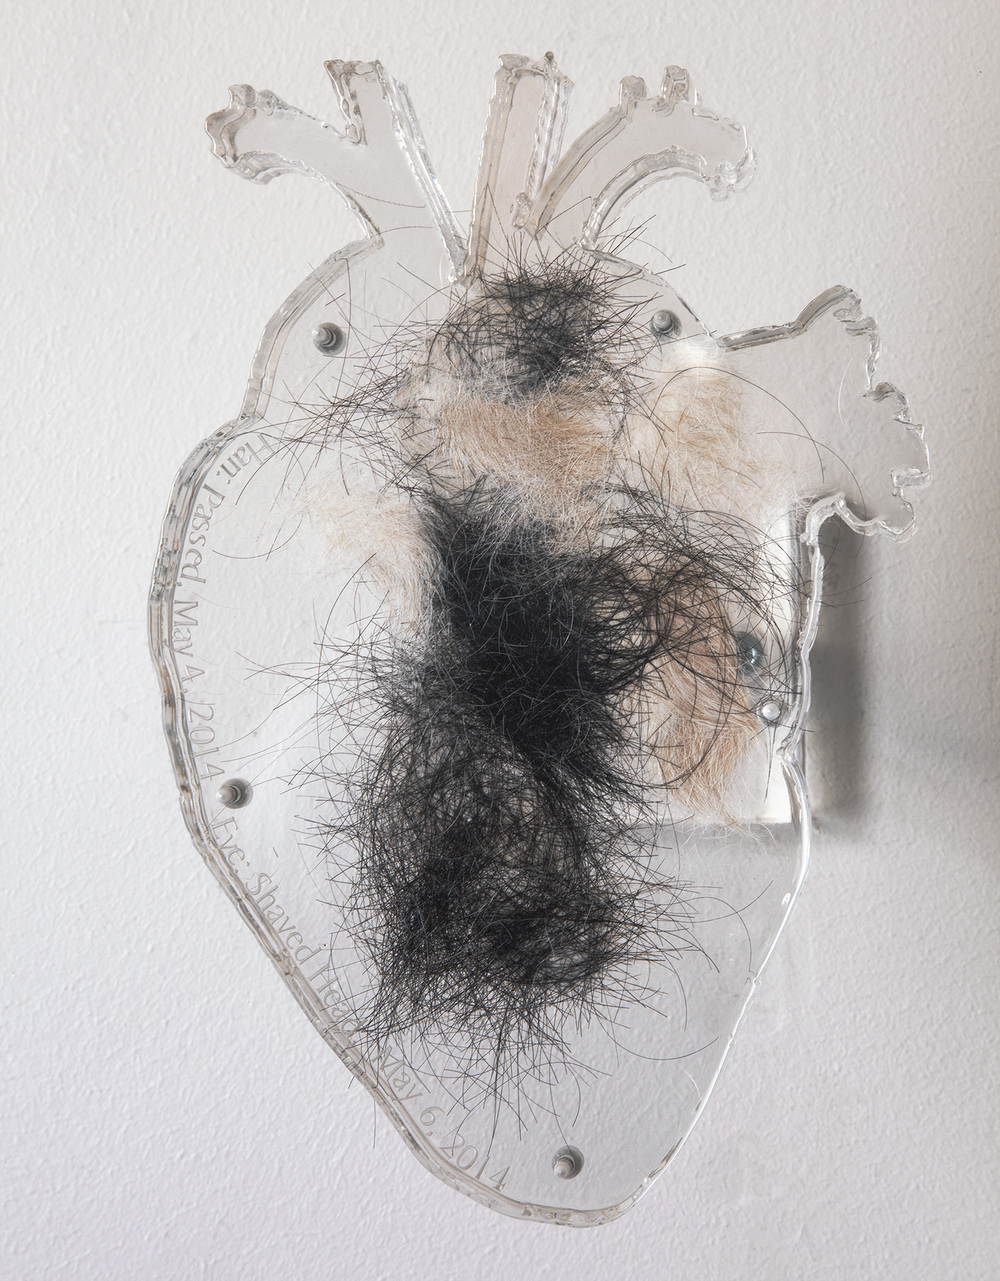 Eve Wood  Final Translation  2014 Acrylic, dog hair, human hair 8 x 6 x 9 Inches   Courtesy of the Artist